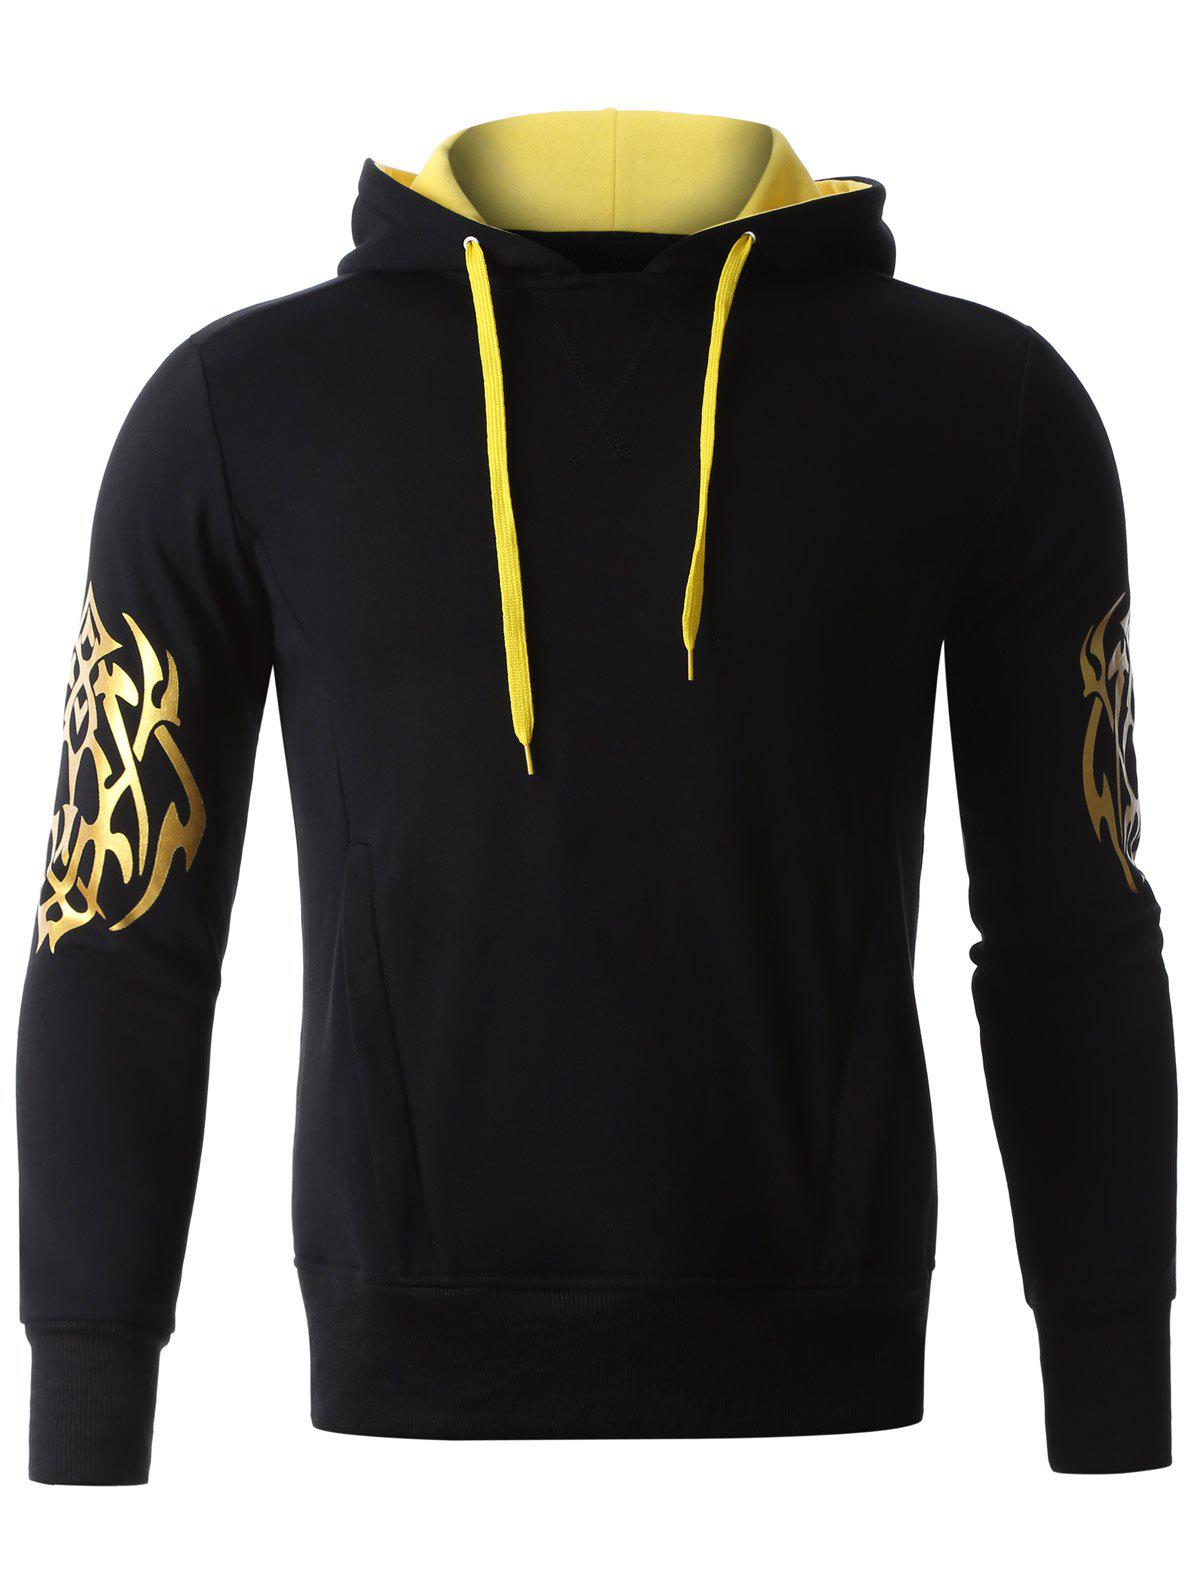 Unique Golden Printed Long Sleeve Hoodie